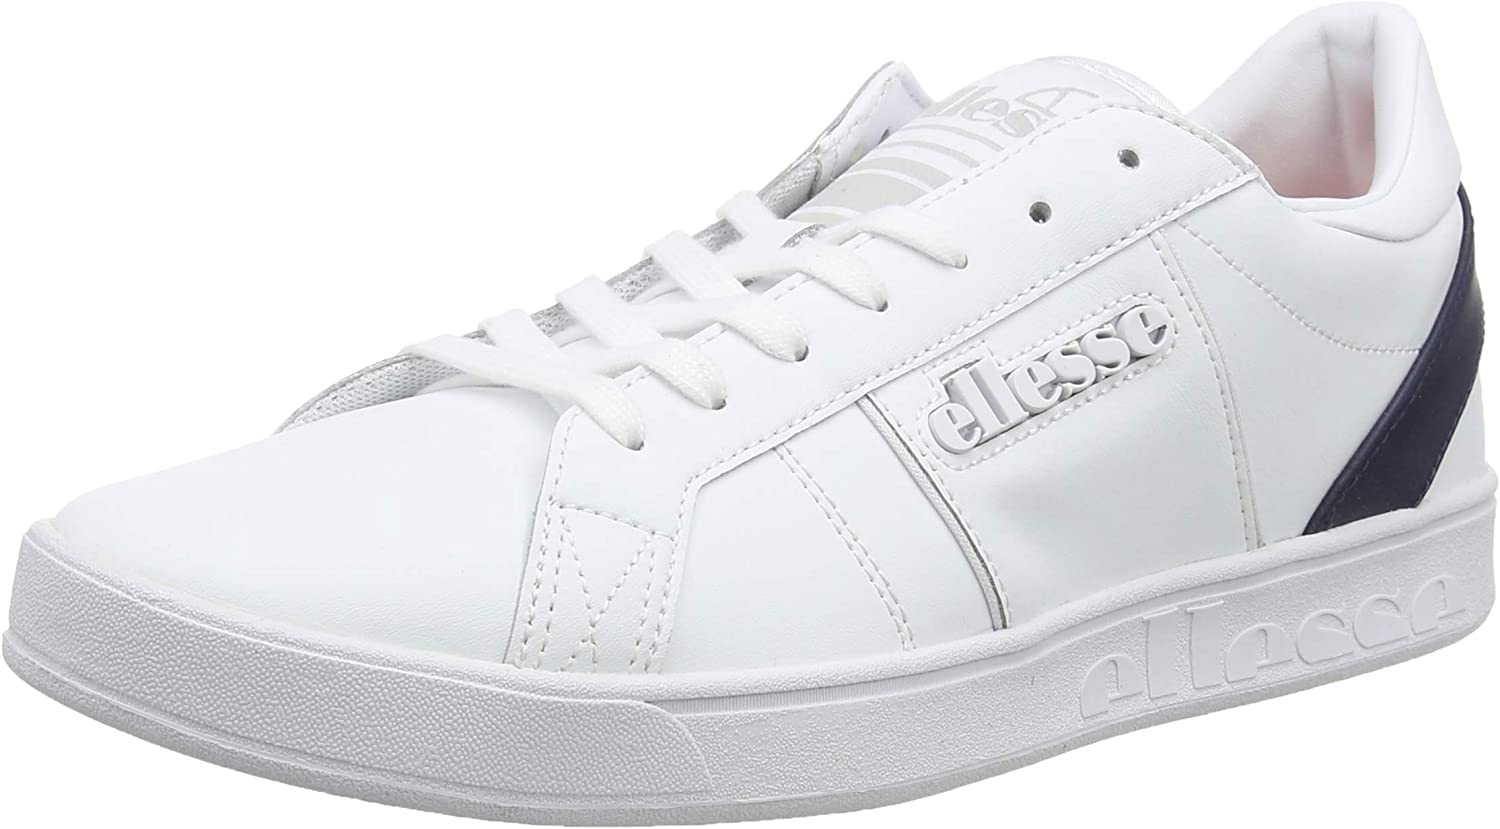 Ellesse Men's LS-80 Leather Trainers, White